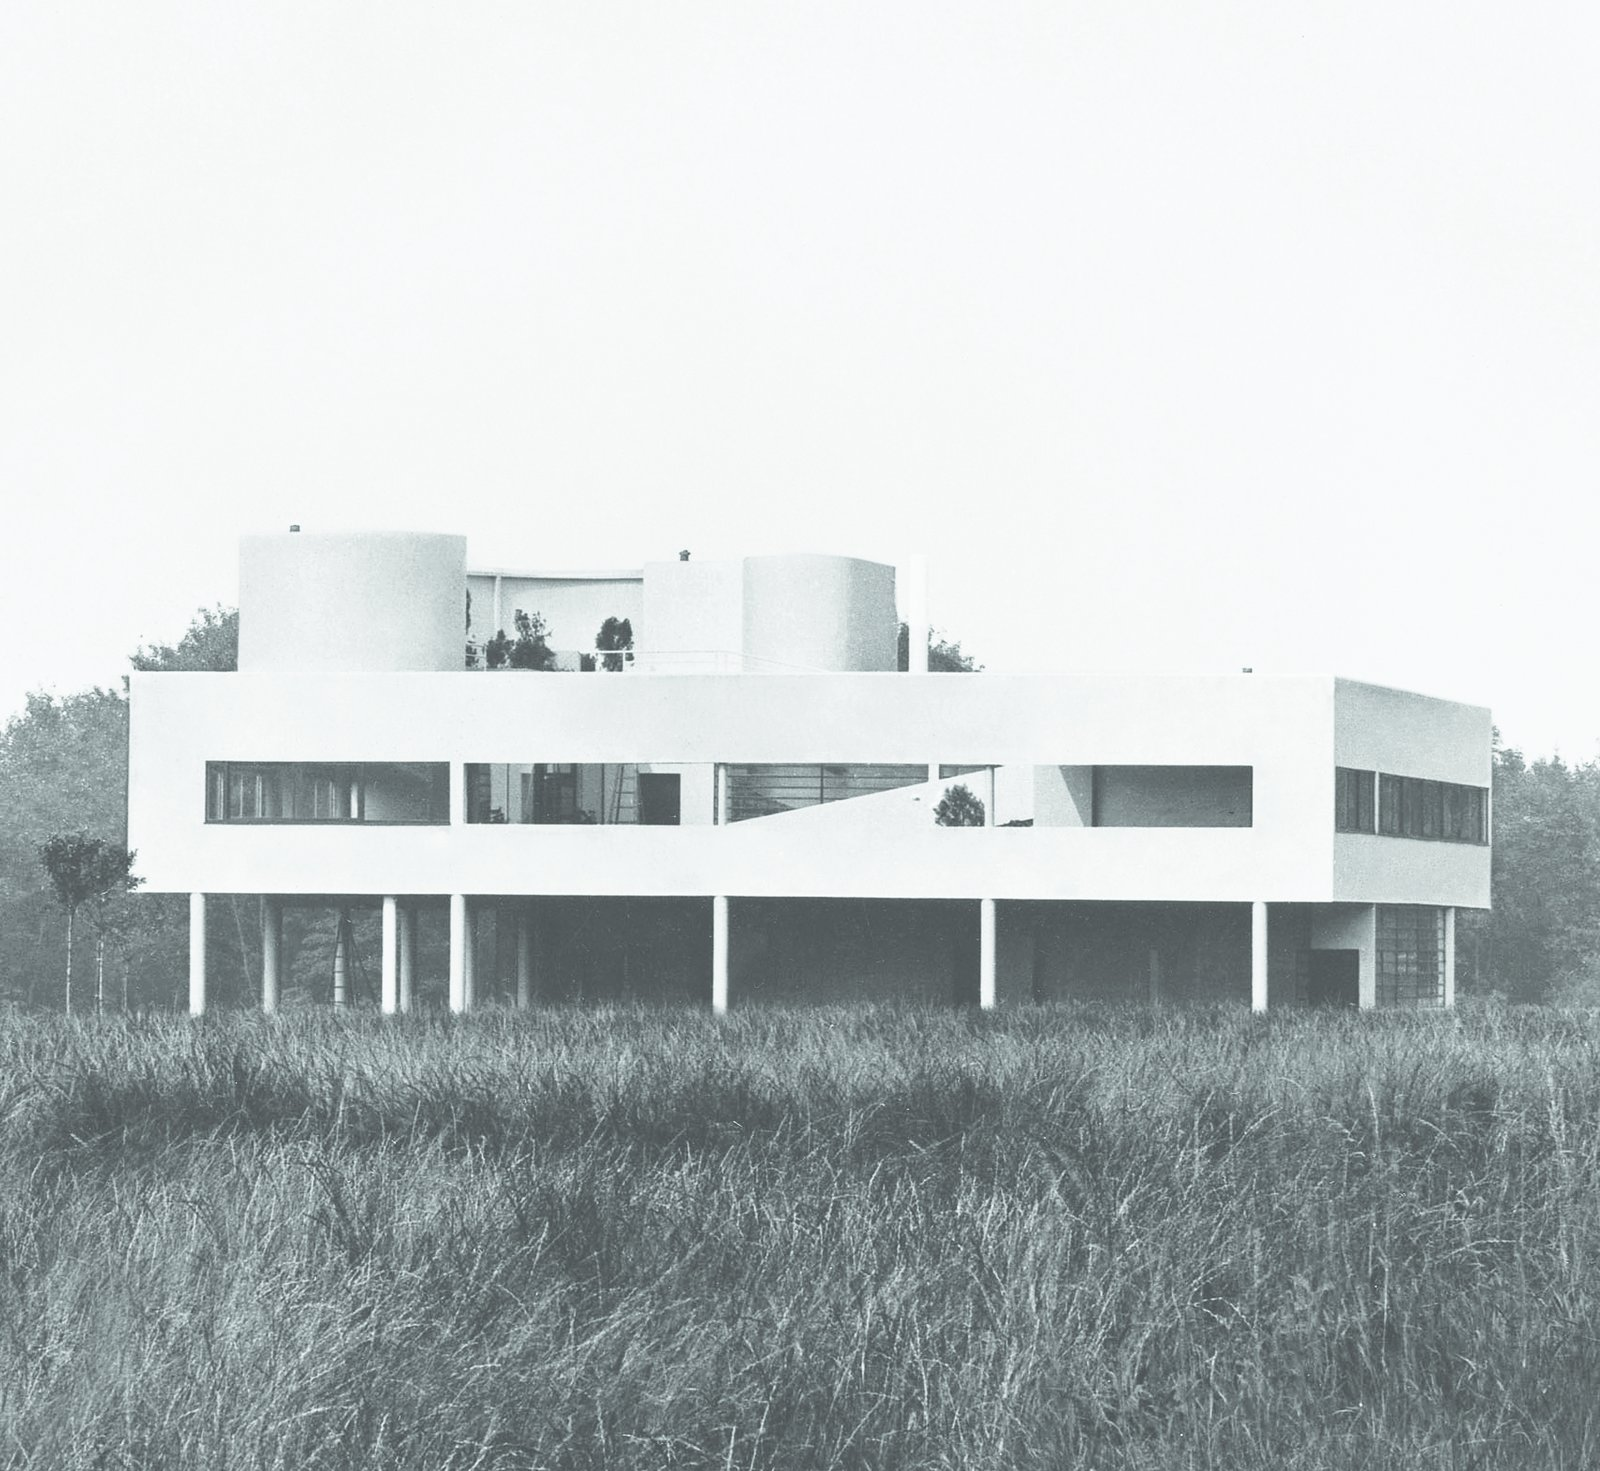 Le Corbusier: Villa Savoye, Poissy, France, 1928-1931  Photo 1 of 11 in Dive Into a Visually Stunning Book That Celebrates Modernist Architecture and its Evolution